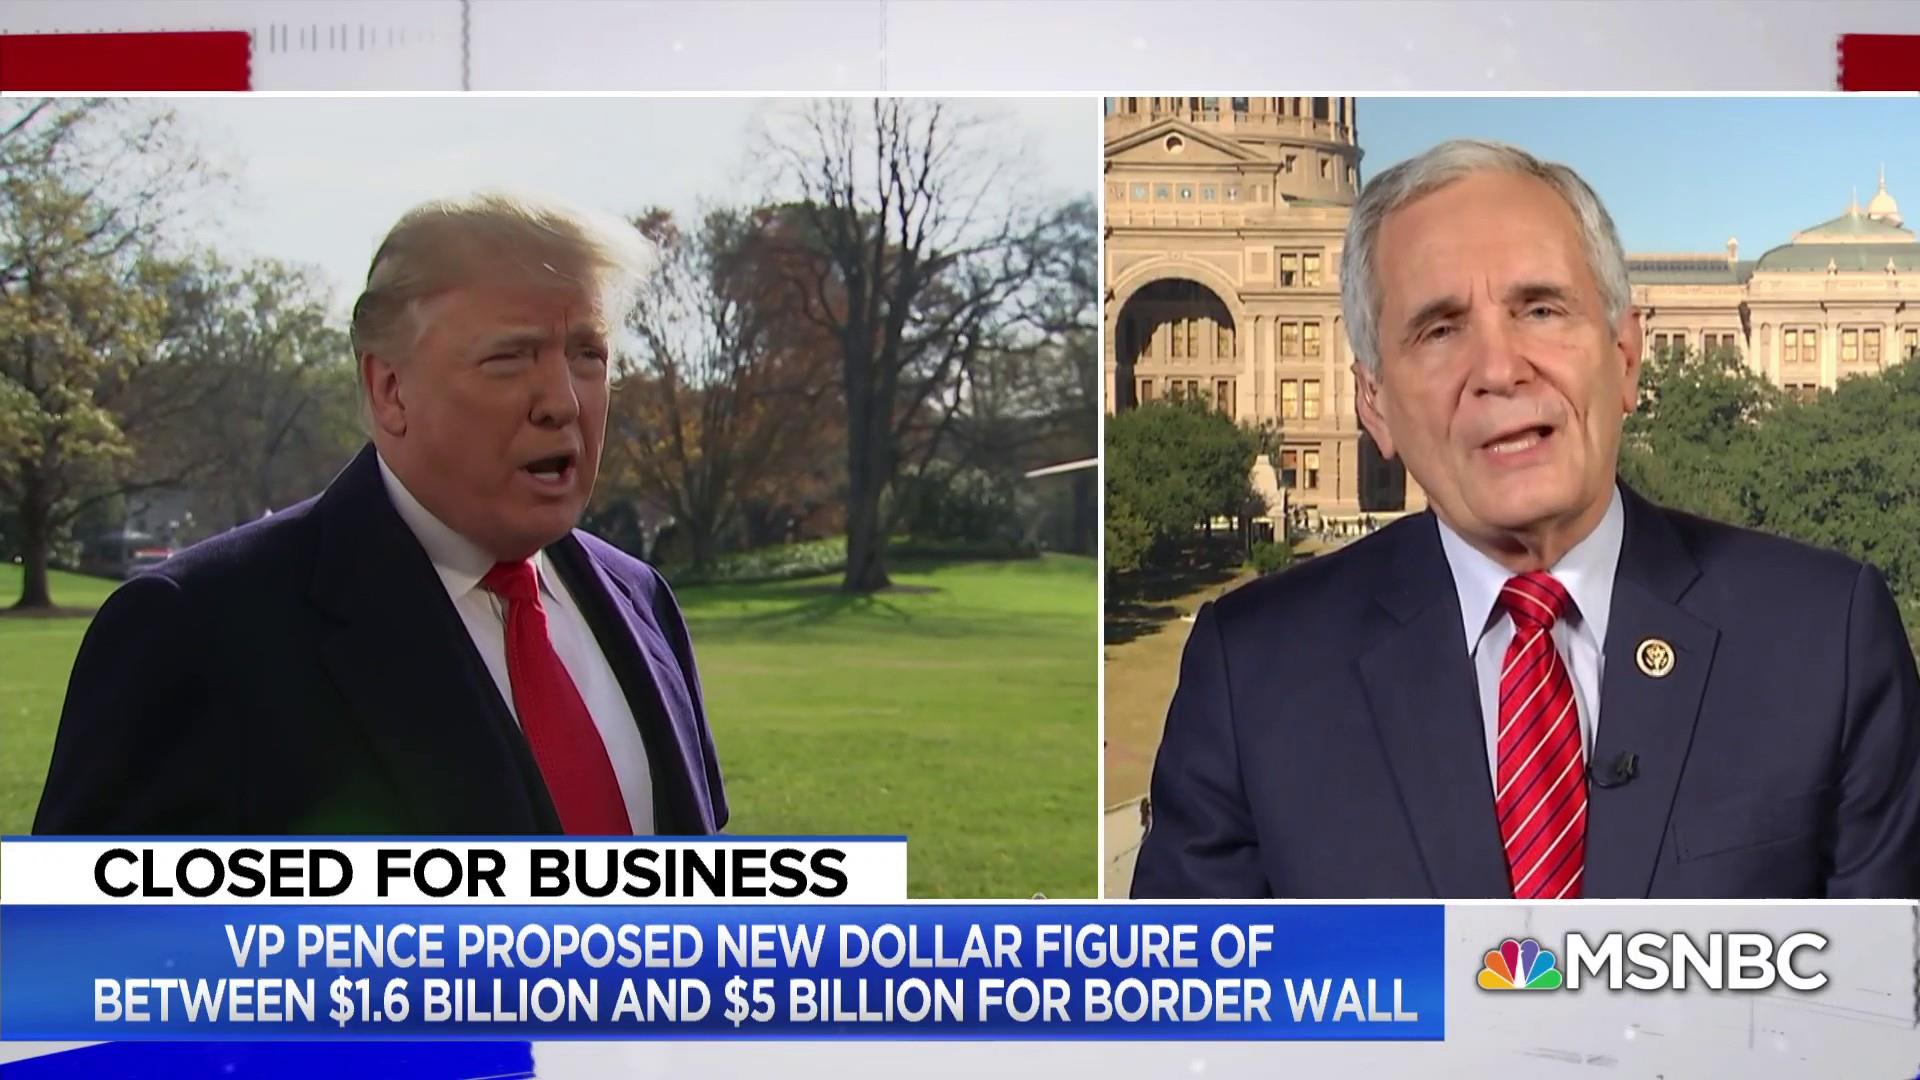 Rep. Doggett: 'President Chaos' is cause of government shutdown